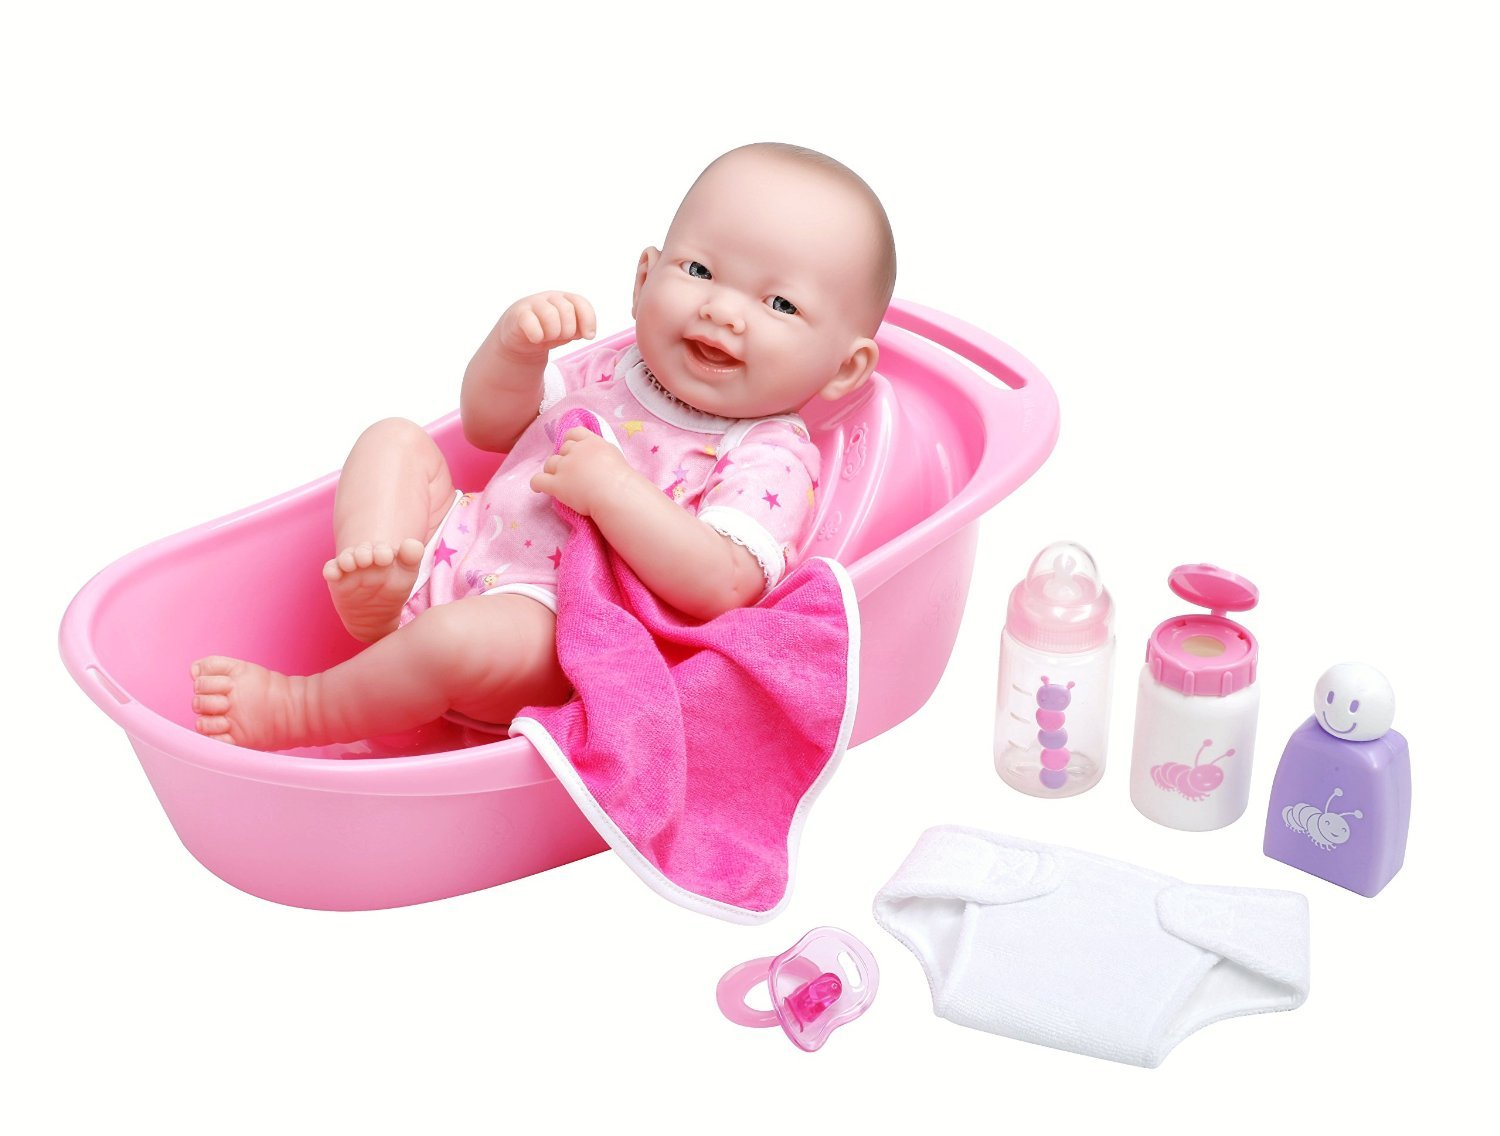 JC Toys LA NEWBORN 8 Piece Deluxe BATHTUB GIFT SET, featuring 14' Life-Like All Vinyl Smiling Baby Newborn Doll, Pink featuring 14 Life-Like All Vinyl Smiling Baby Newborn Doll JC Toys Group Inc. 18570